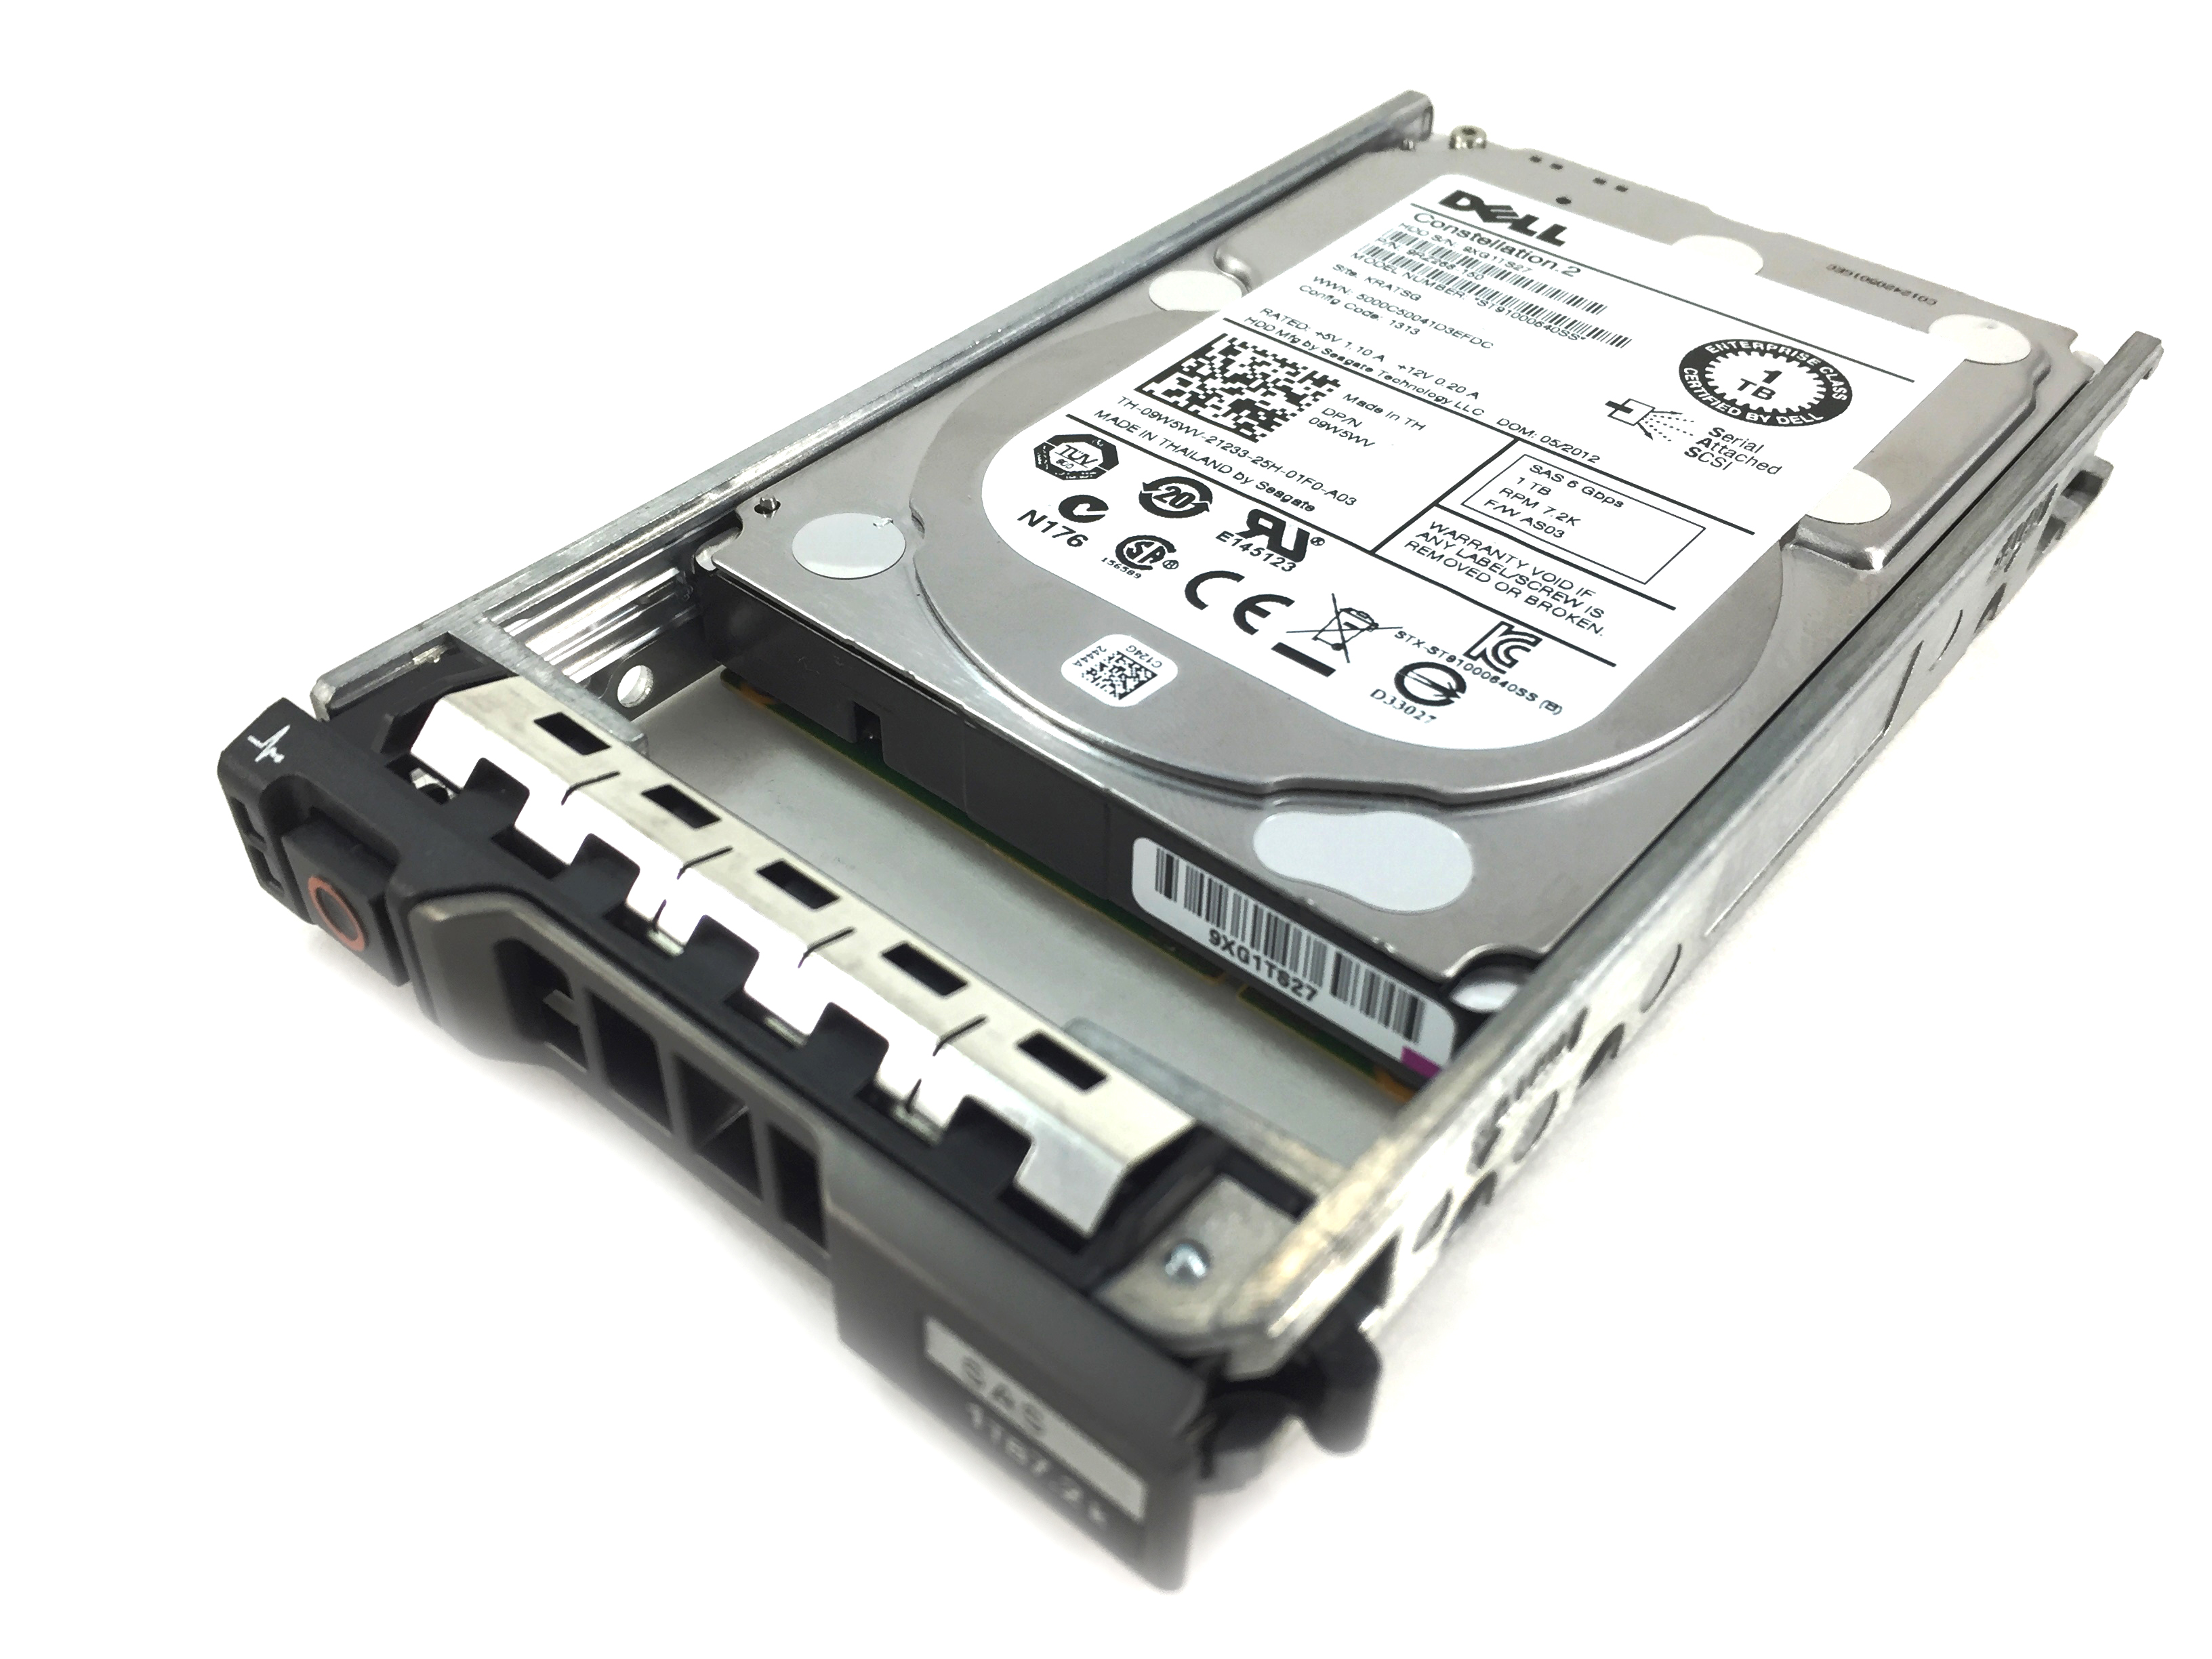 DELL ENTERPRISE 1TB 7.2K 6GBPS SAS 2.5'' HARD DRIVE W/ TRAY (9W5WV)